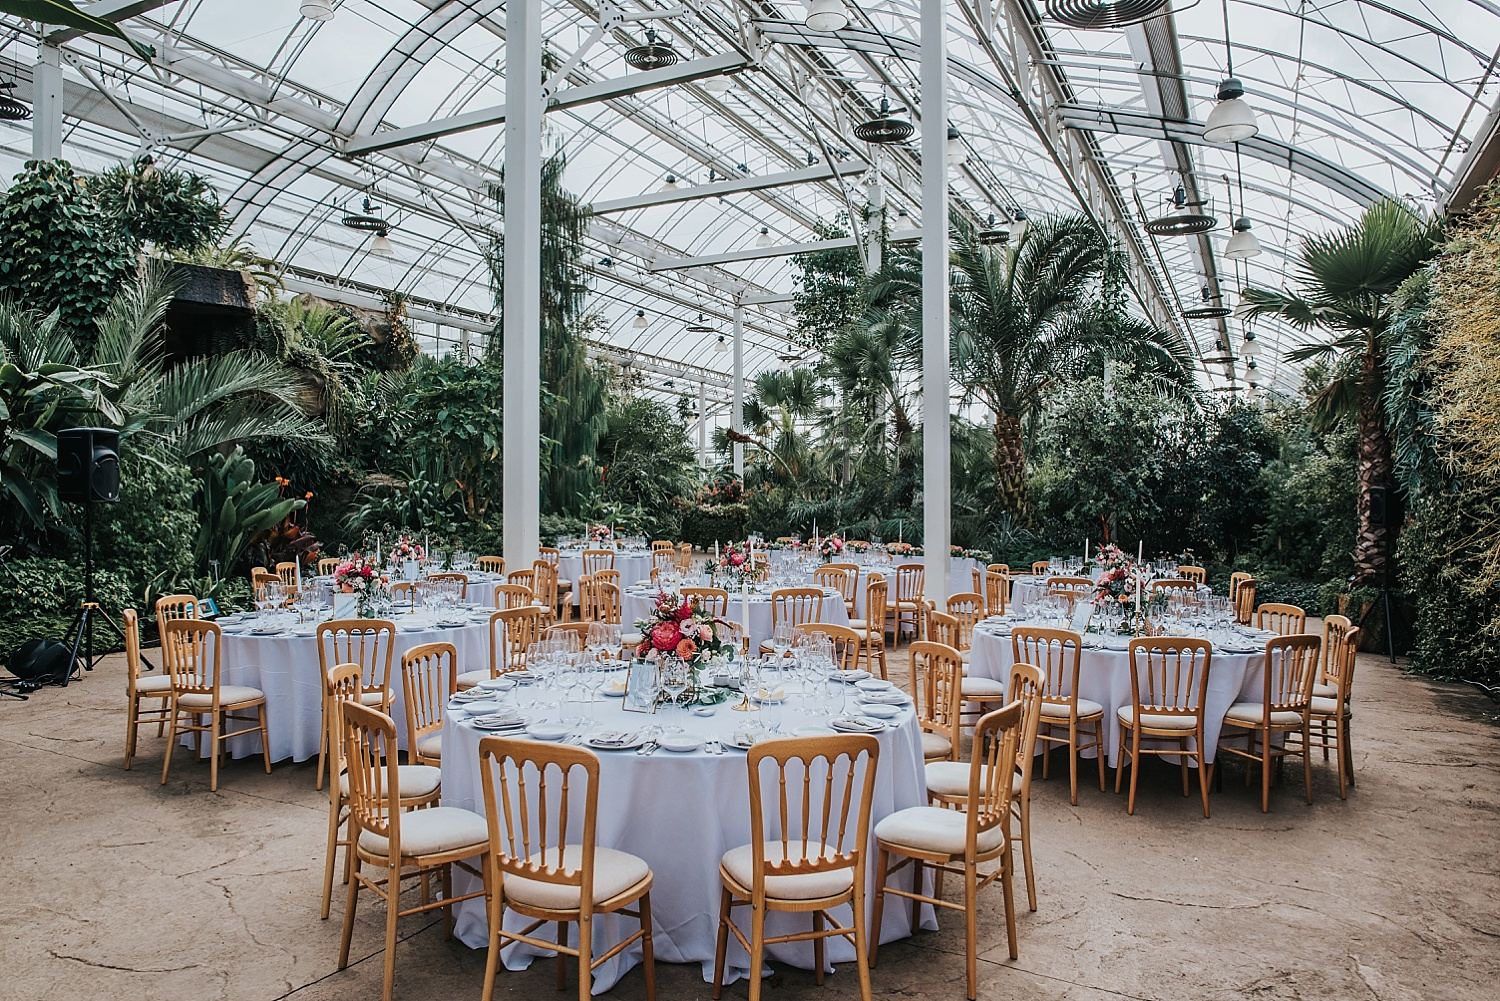 wedding setup inside RHS Wisely tropical glasshouse